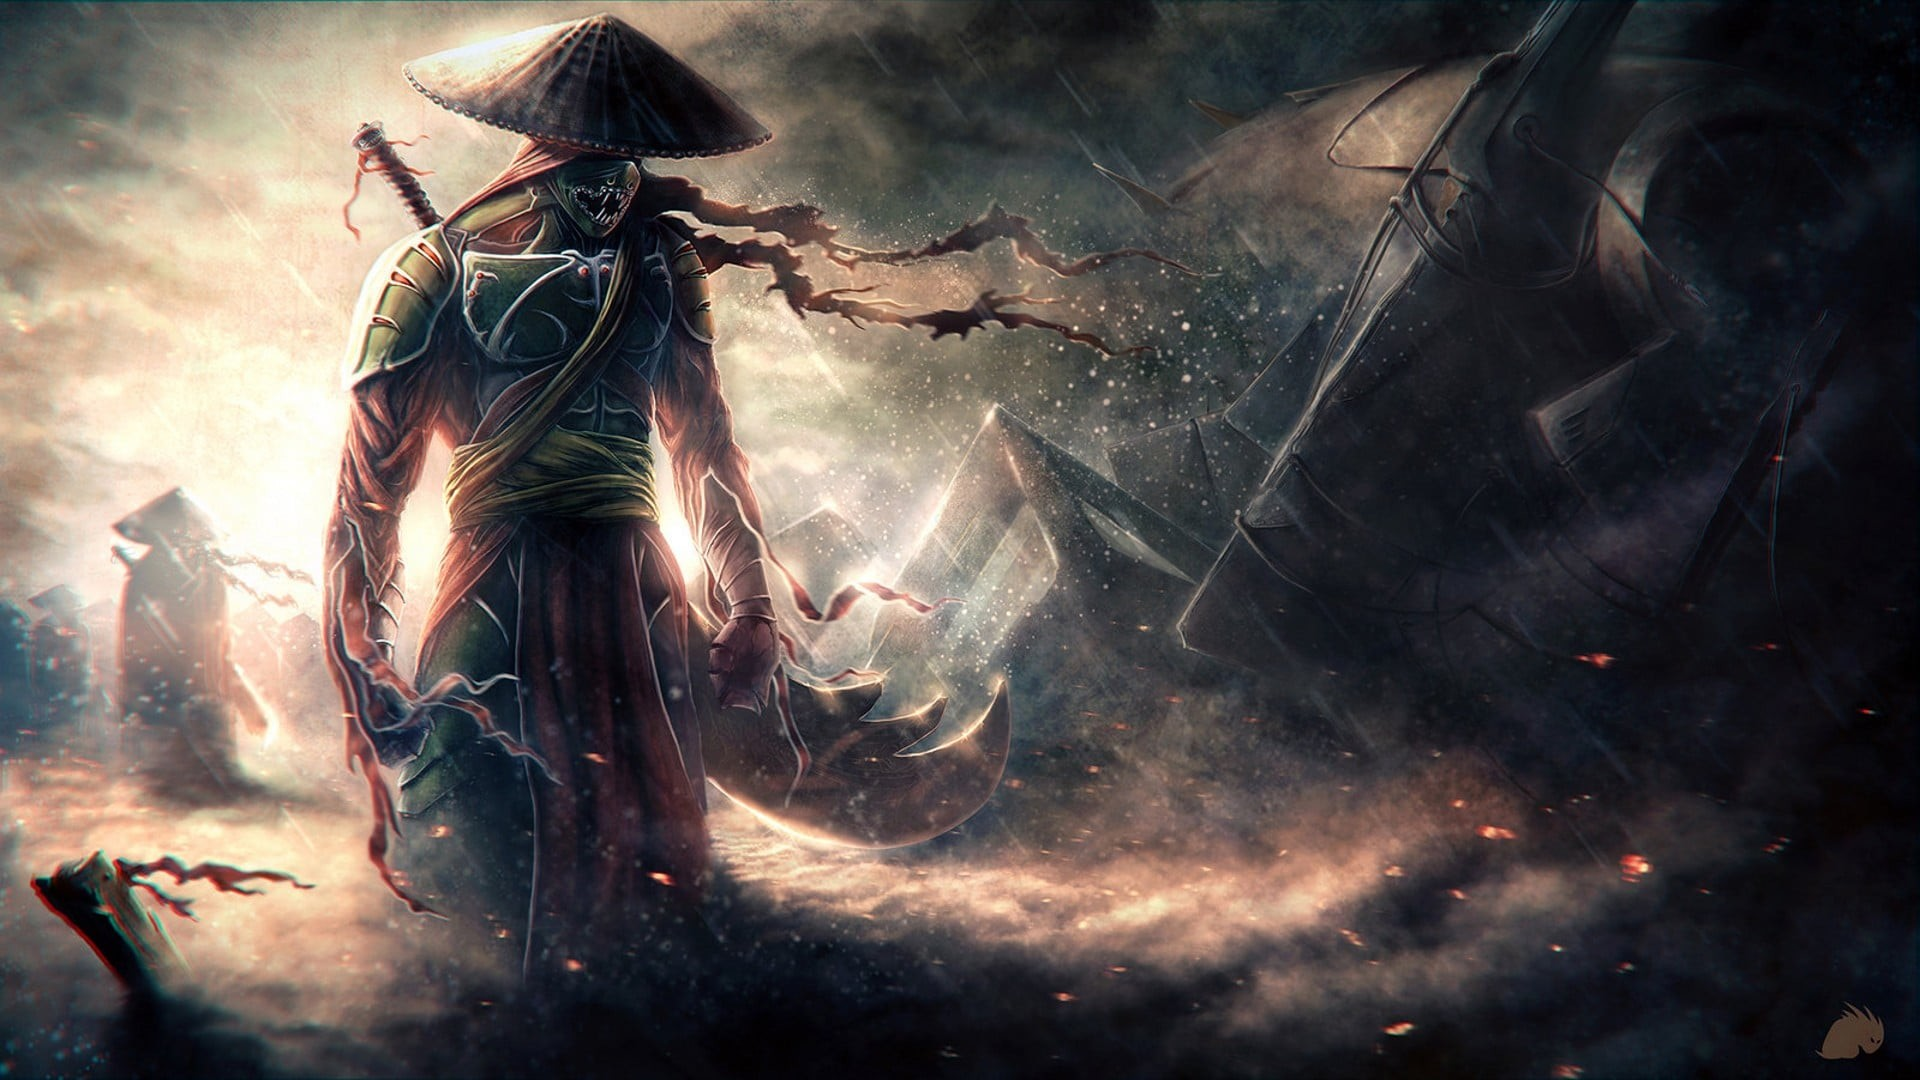 Epic Samurai Hd Wallpaper 1080p